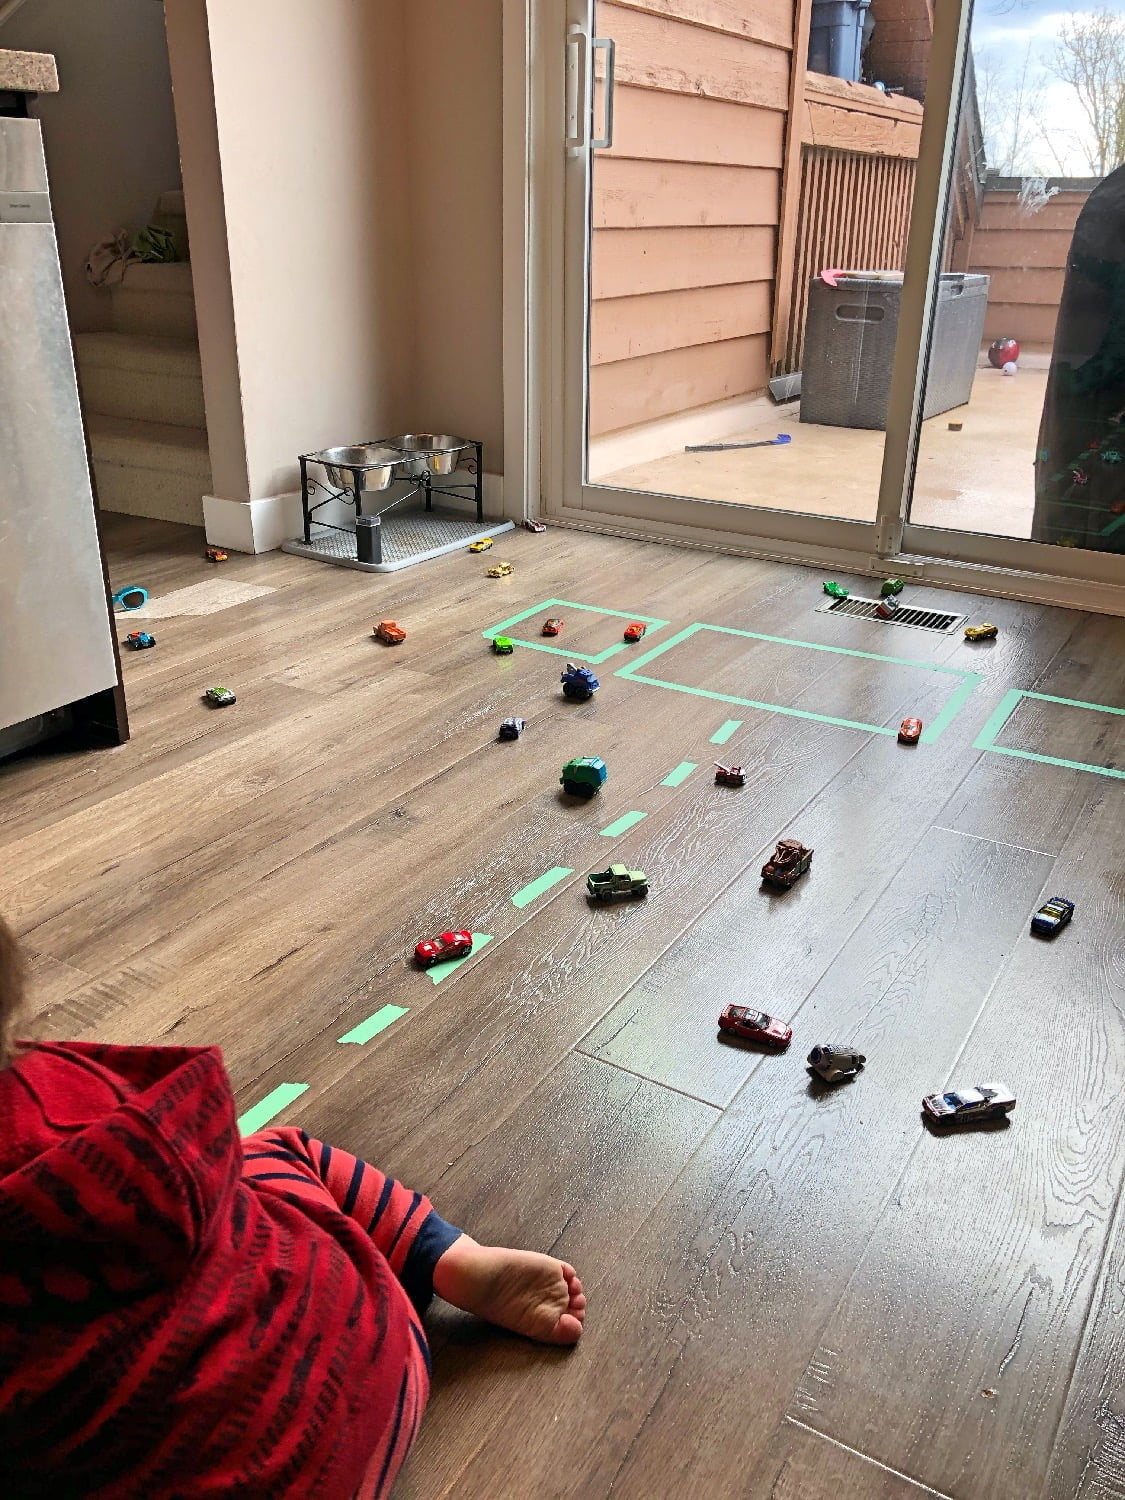 Race Car Game on Kitchen Floor